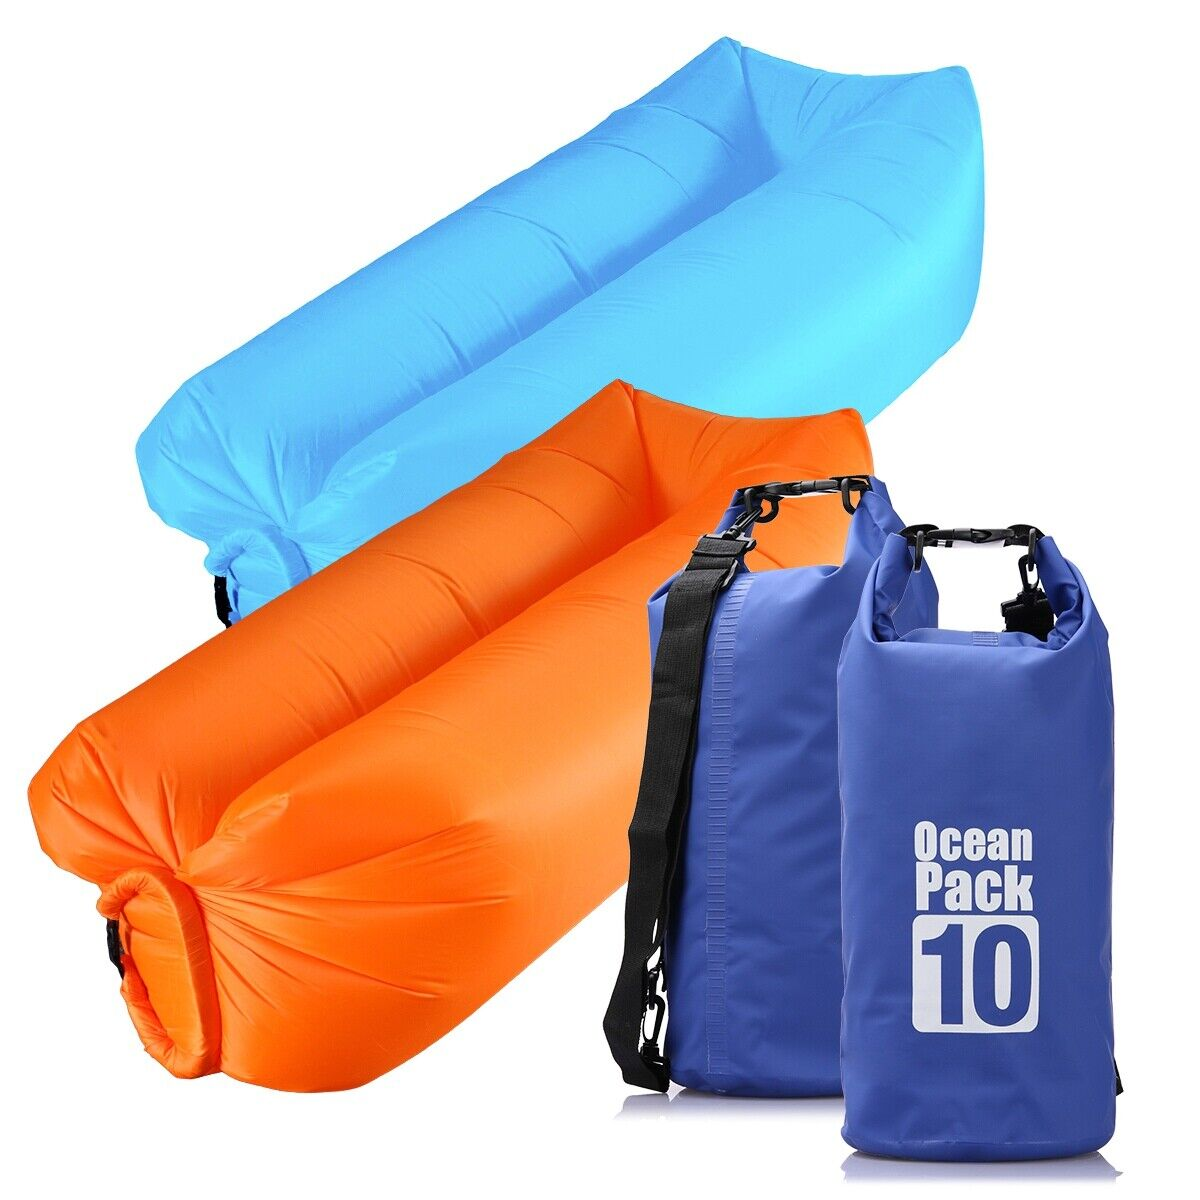 Park, Pool Beach Outdoor Inflatable Sofa Air Bed Easy to Use